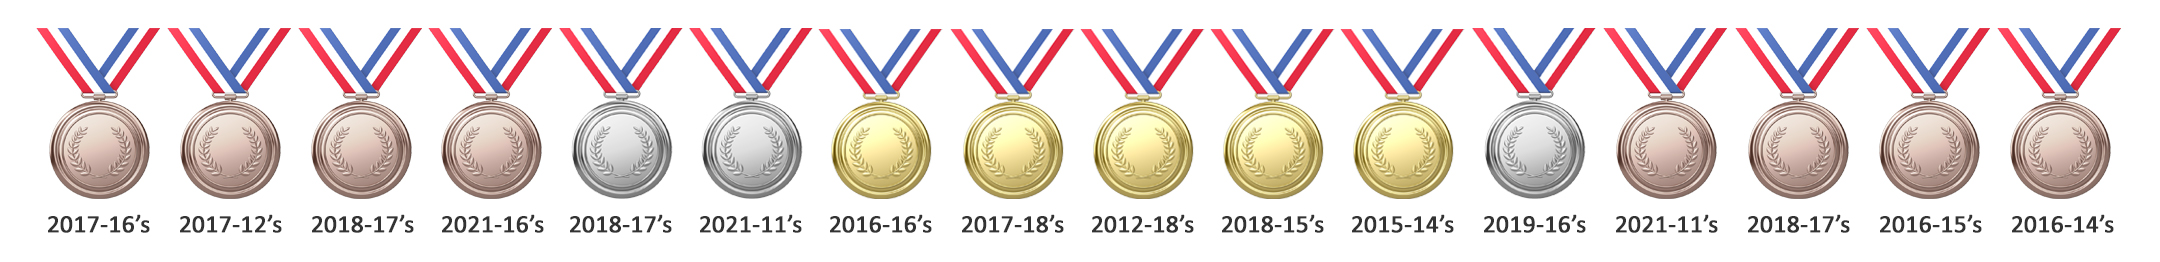 Photo Header - All Medals - Lava West 2021